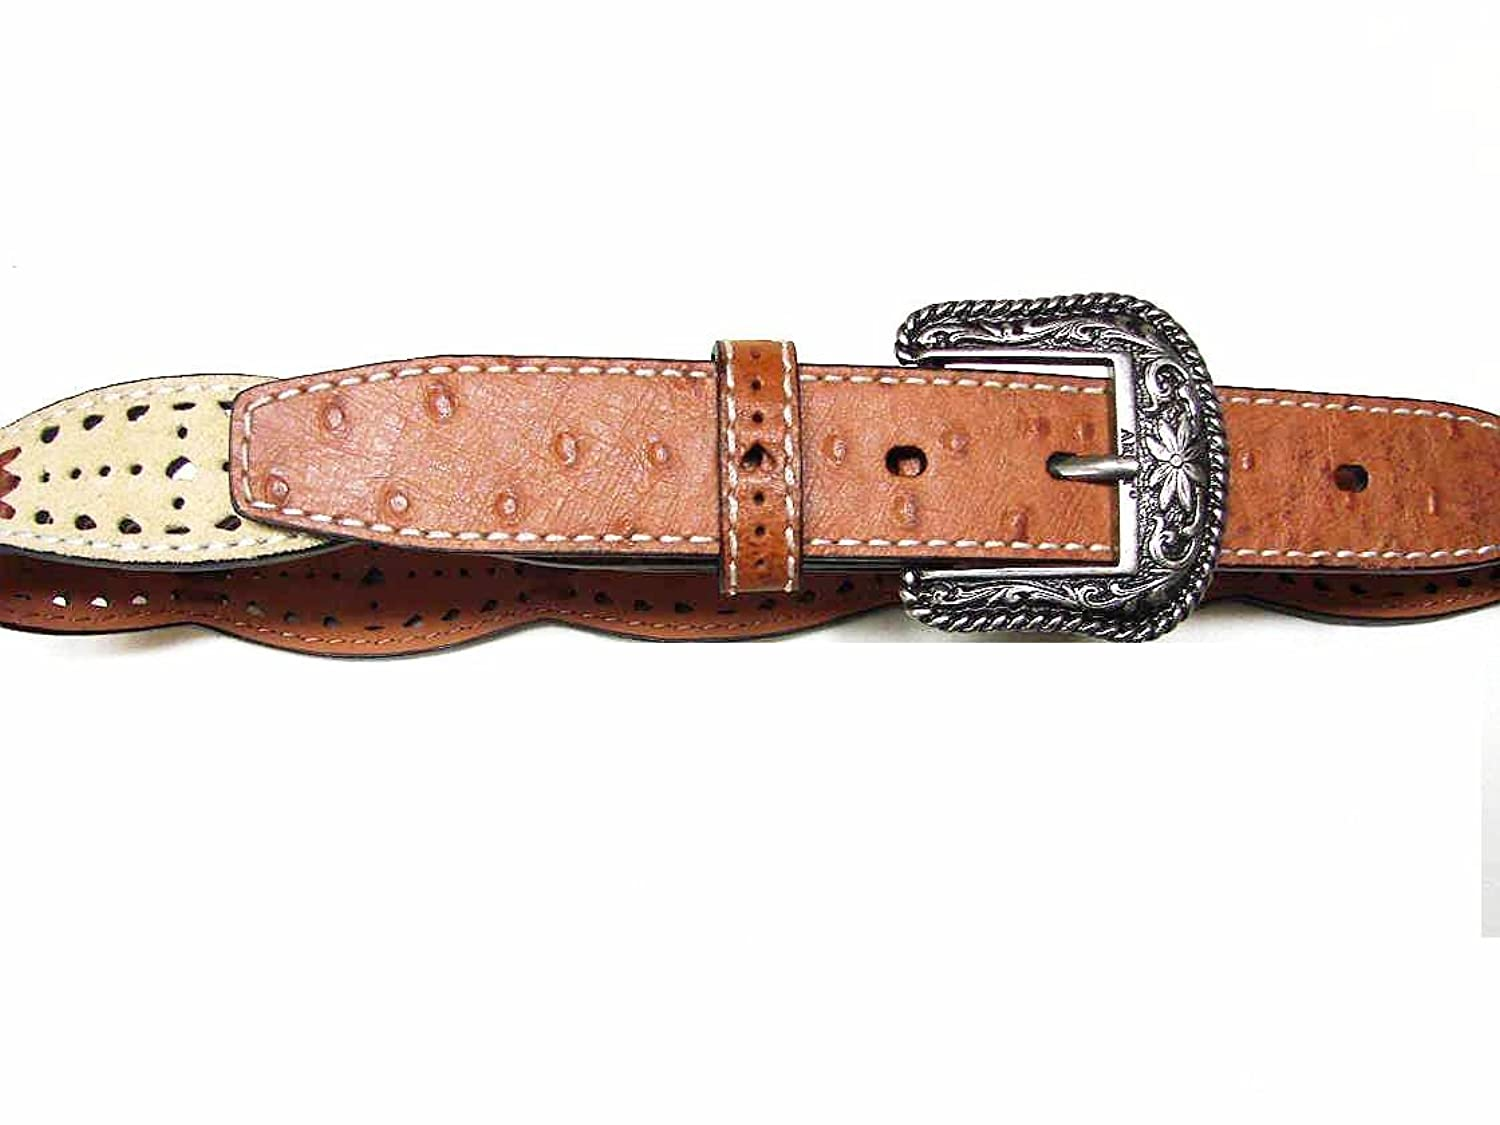 ARIAT GIRL'S NEW LEATHER BELT BROWN / BEIGE SALESMAN SAMPLE SZ 24